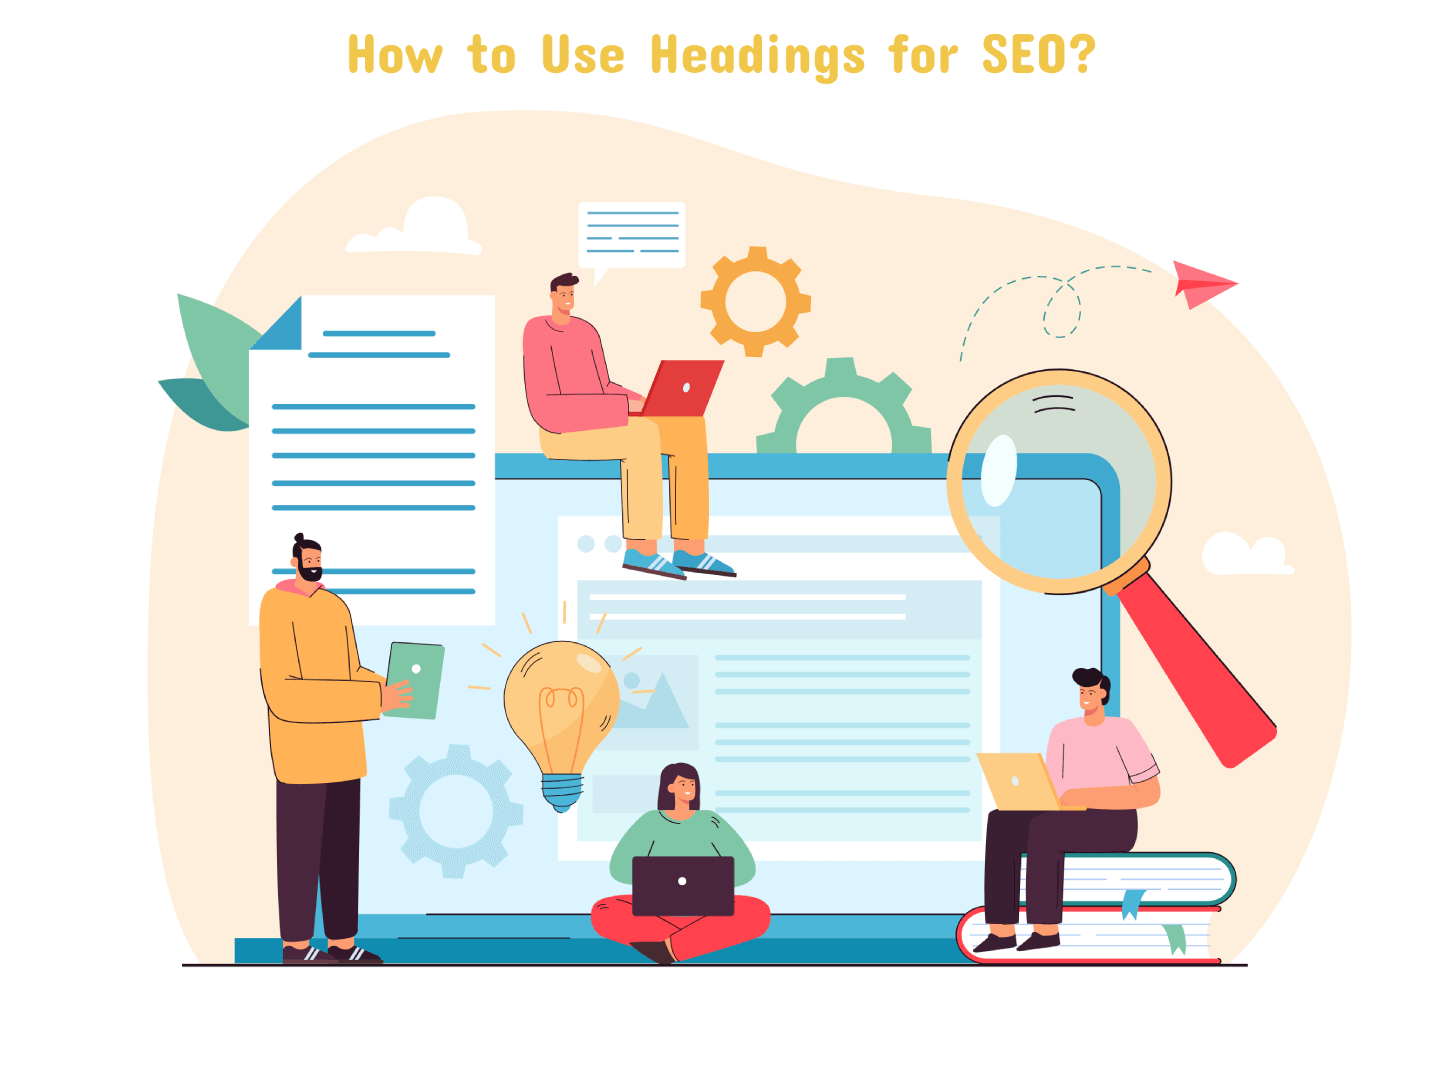 Headings for SEO